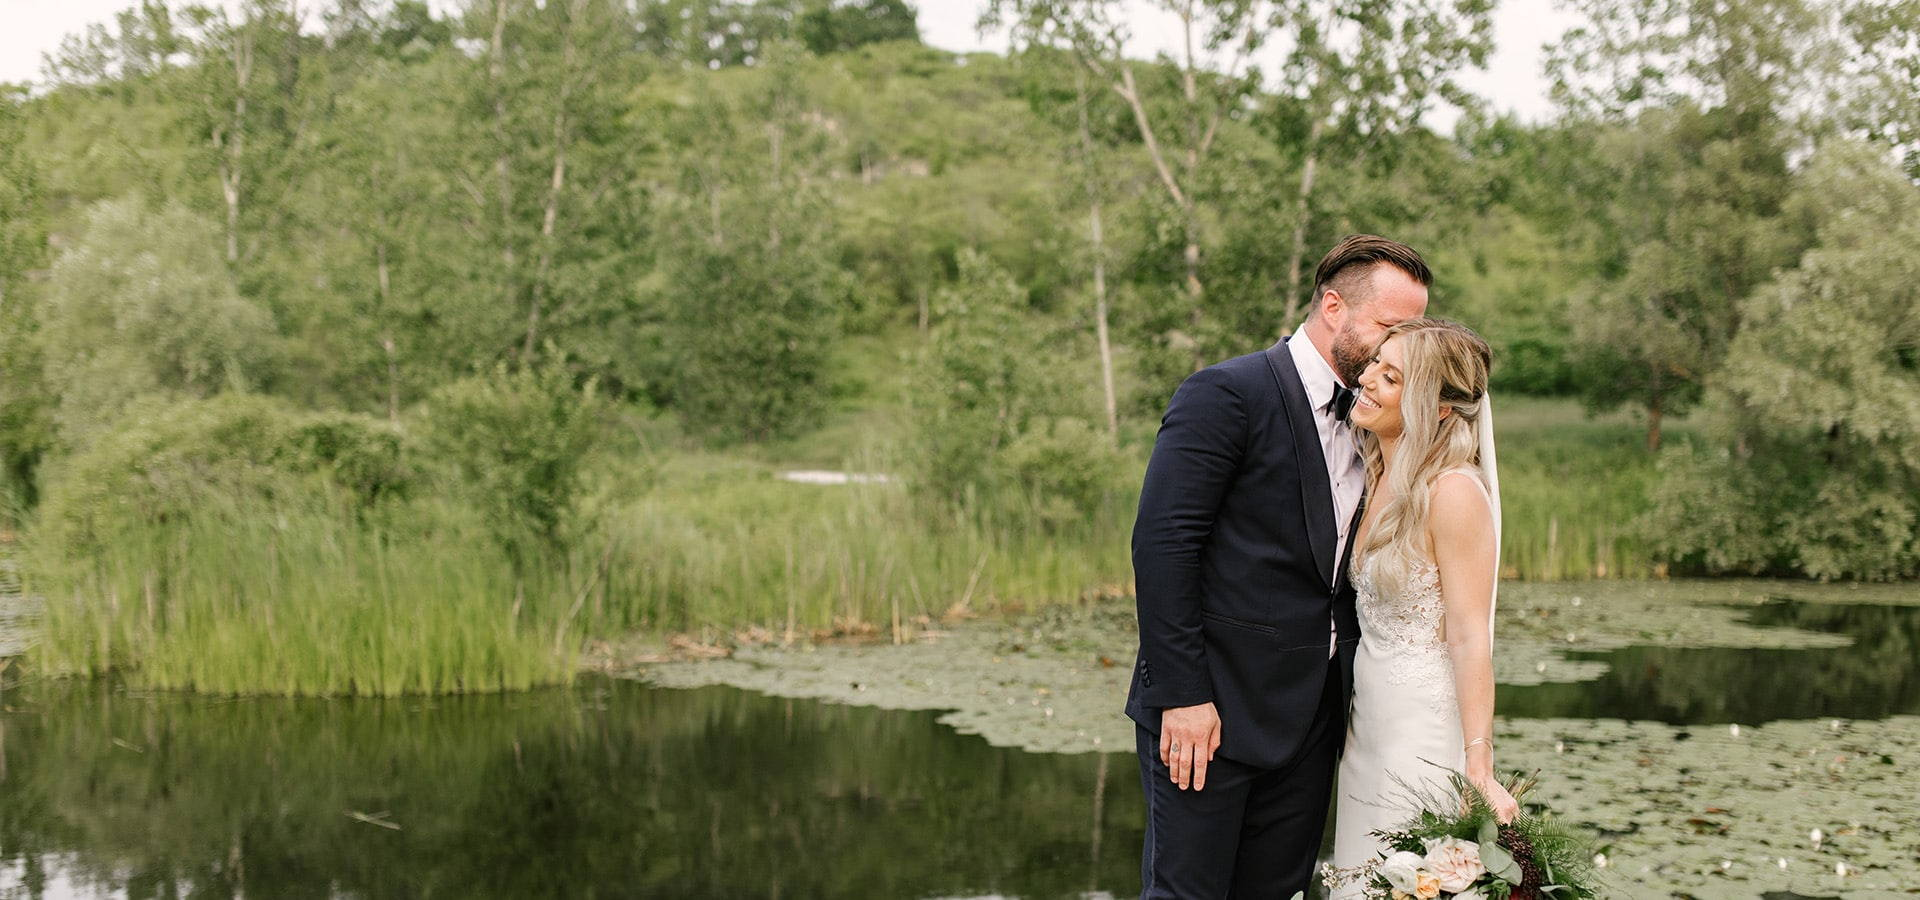 Hero image for Shannon and Mike's Romantic Nuptials at Evergreen Brick Works